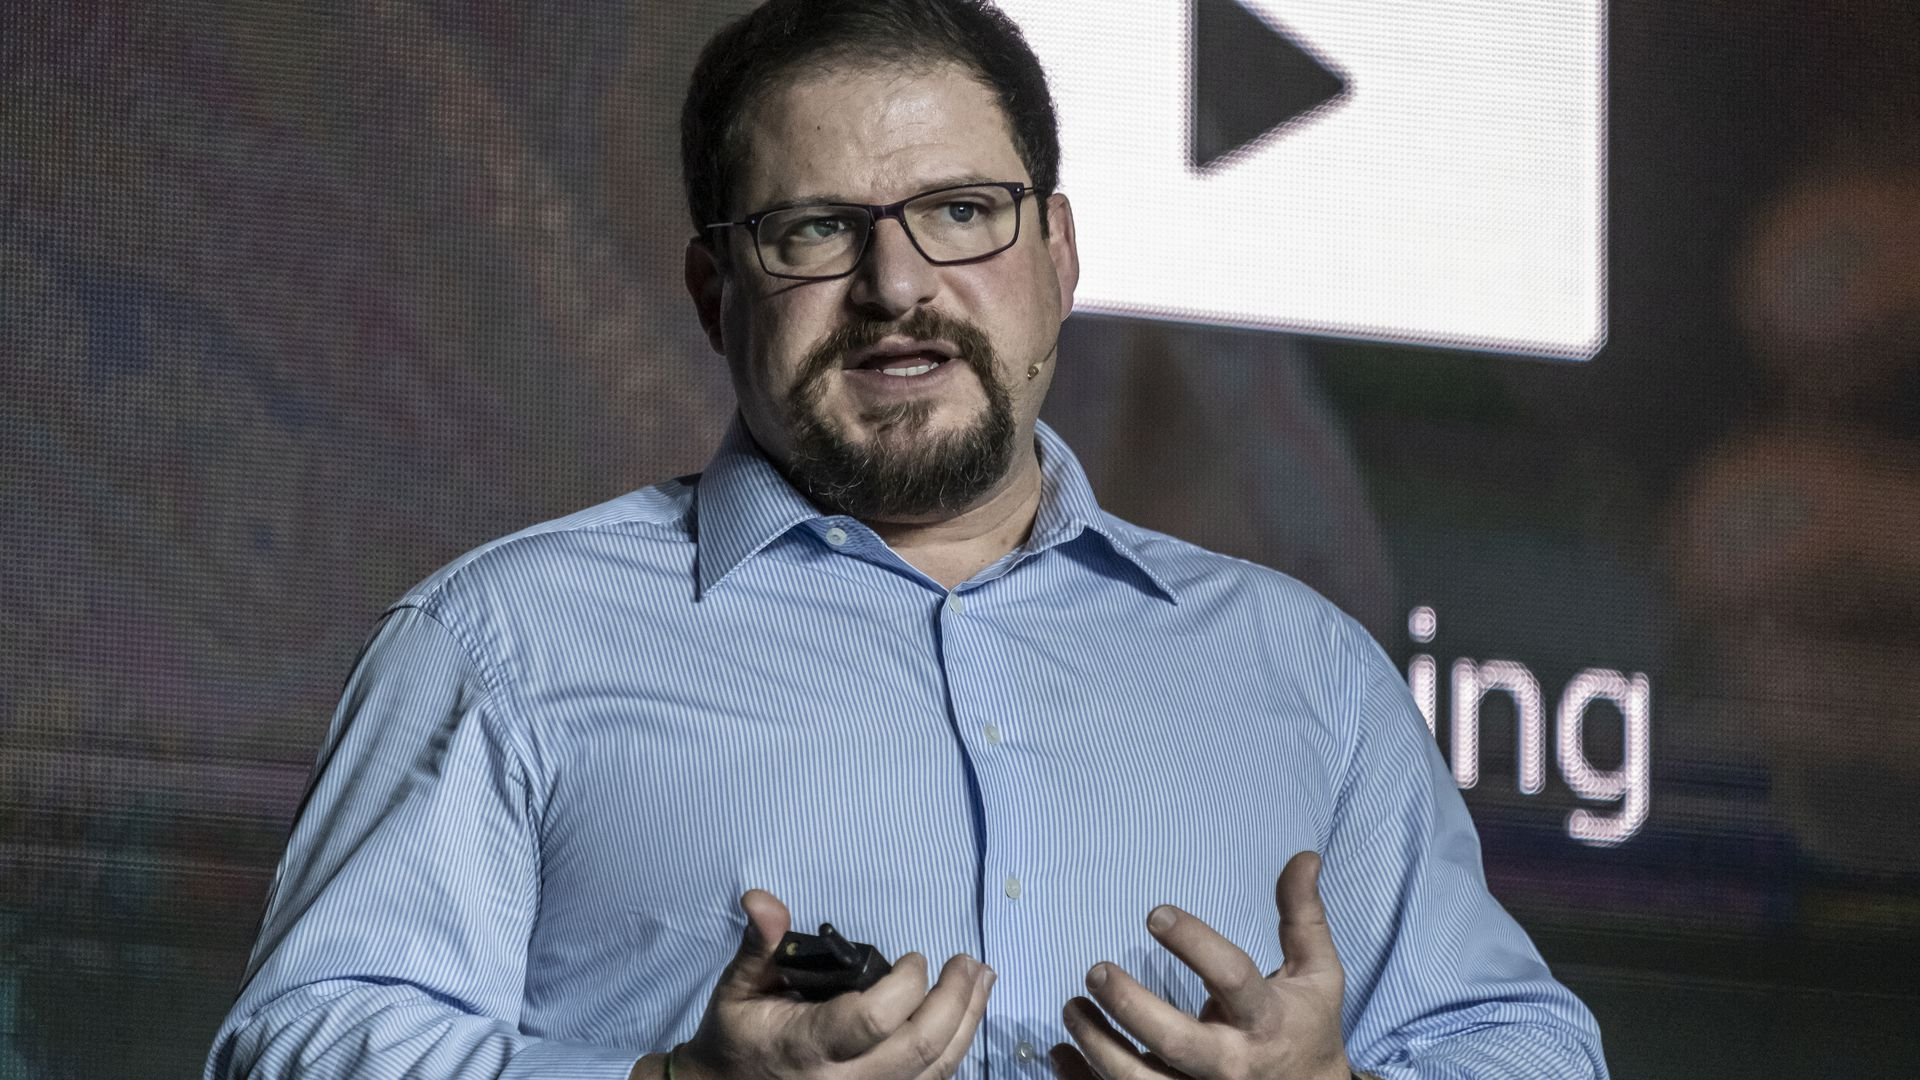 A man presents in a blue collared shirt